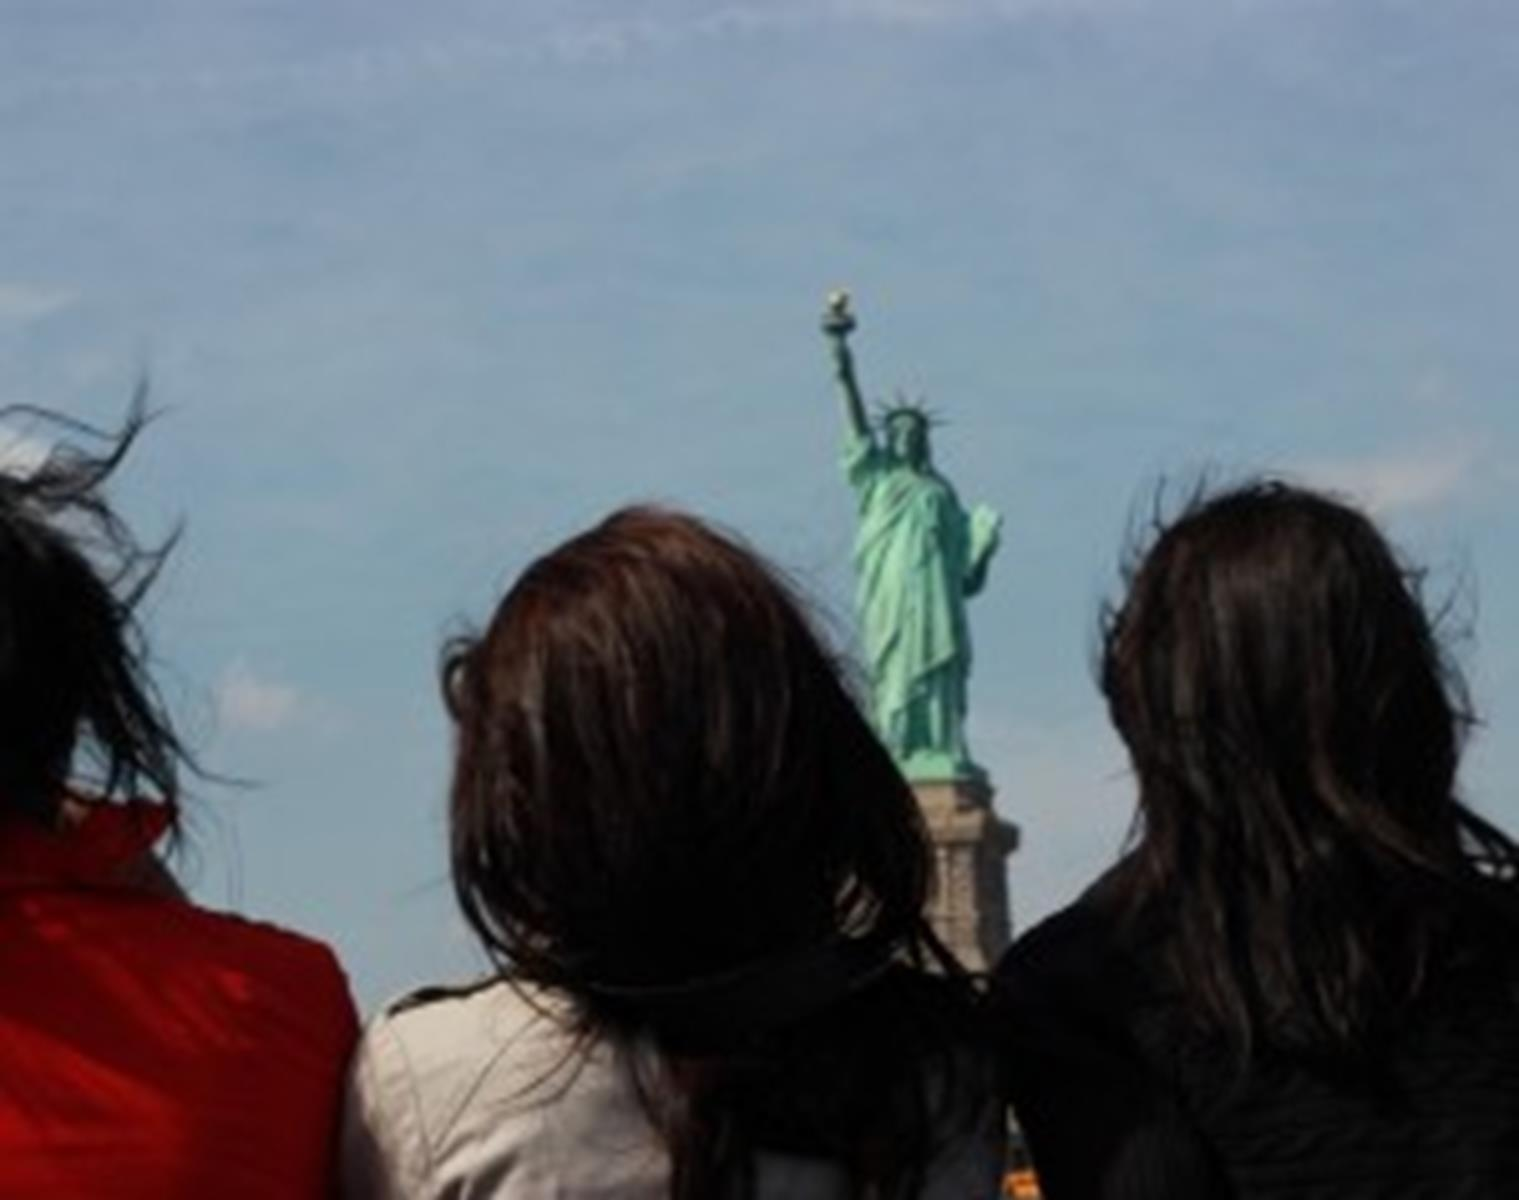 Going to the NYC? City Sightseeing Has Your Tour